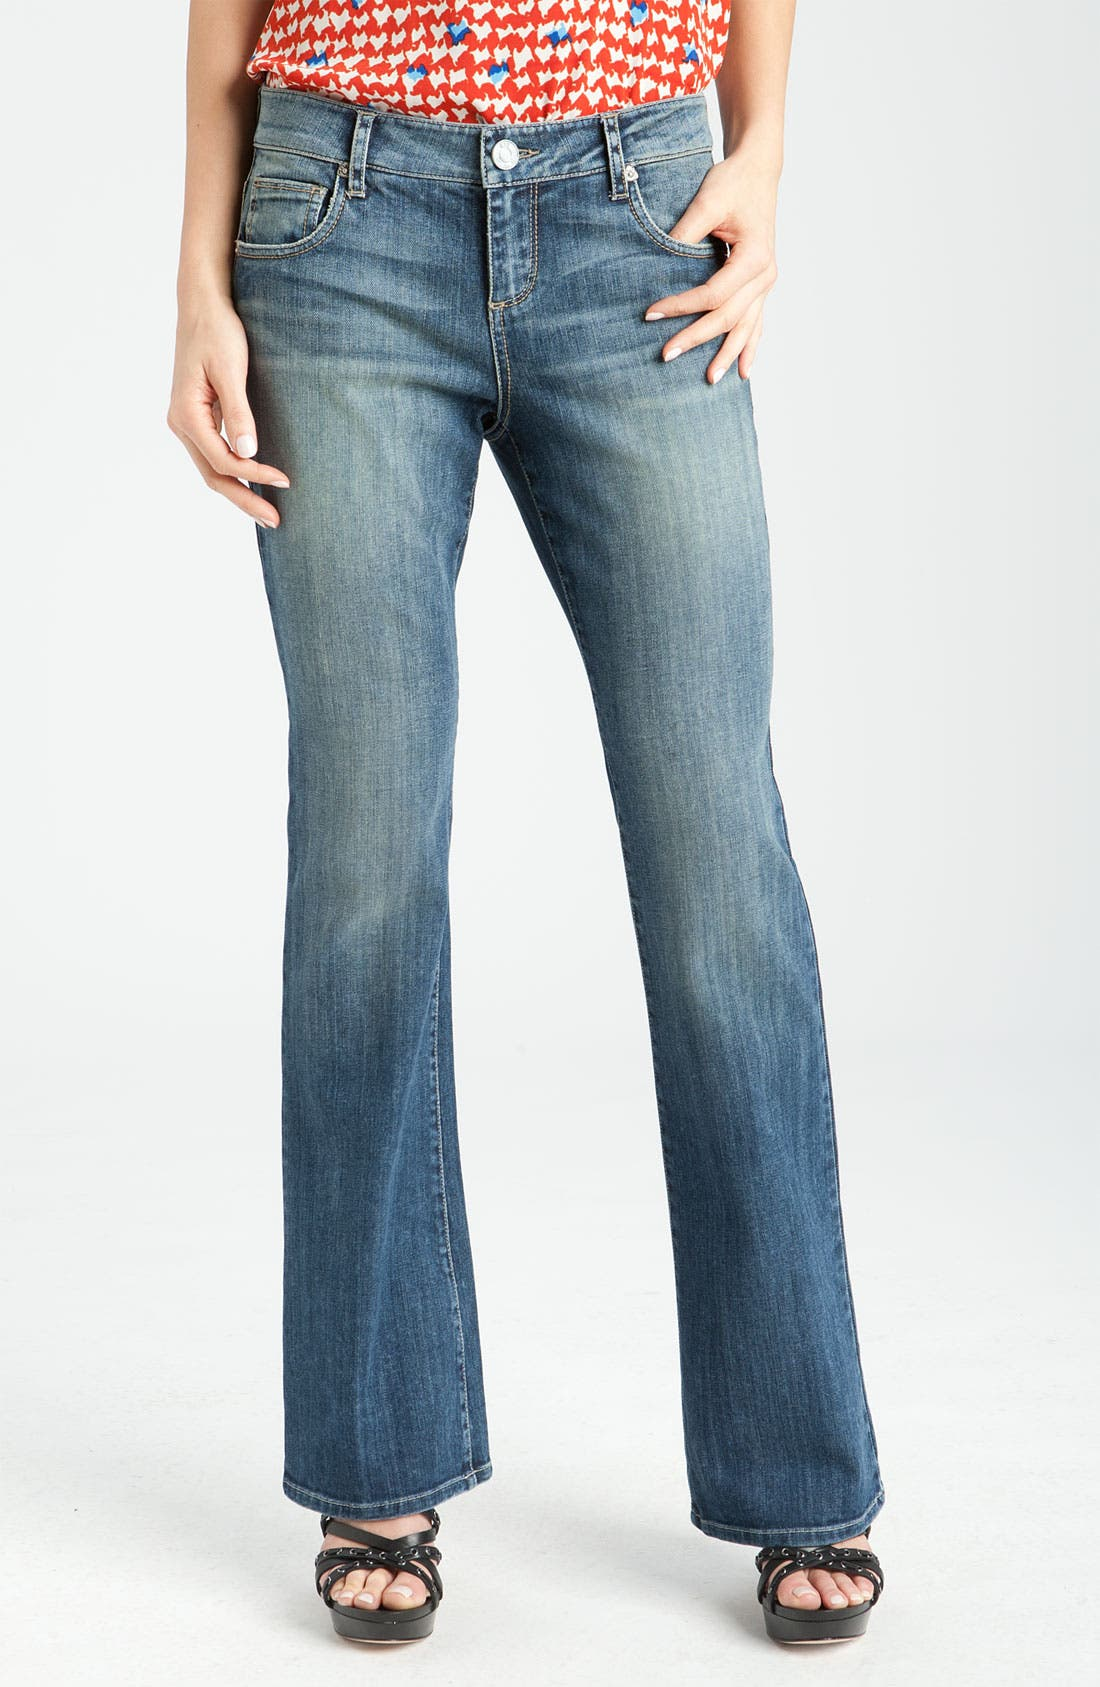 Alternate Image 1 Selected - KUT from the Kloth Baby Bootcut Jeans (Experience Wash)